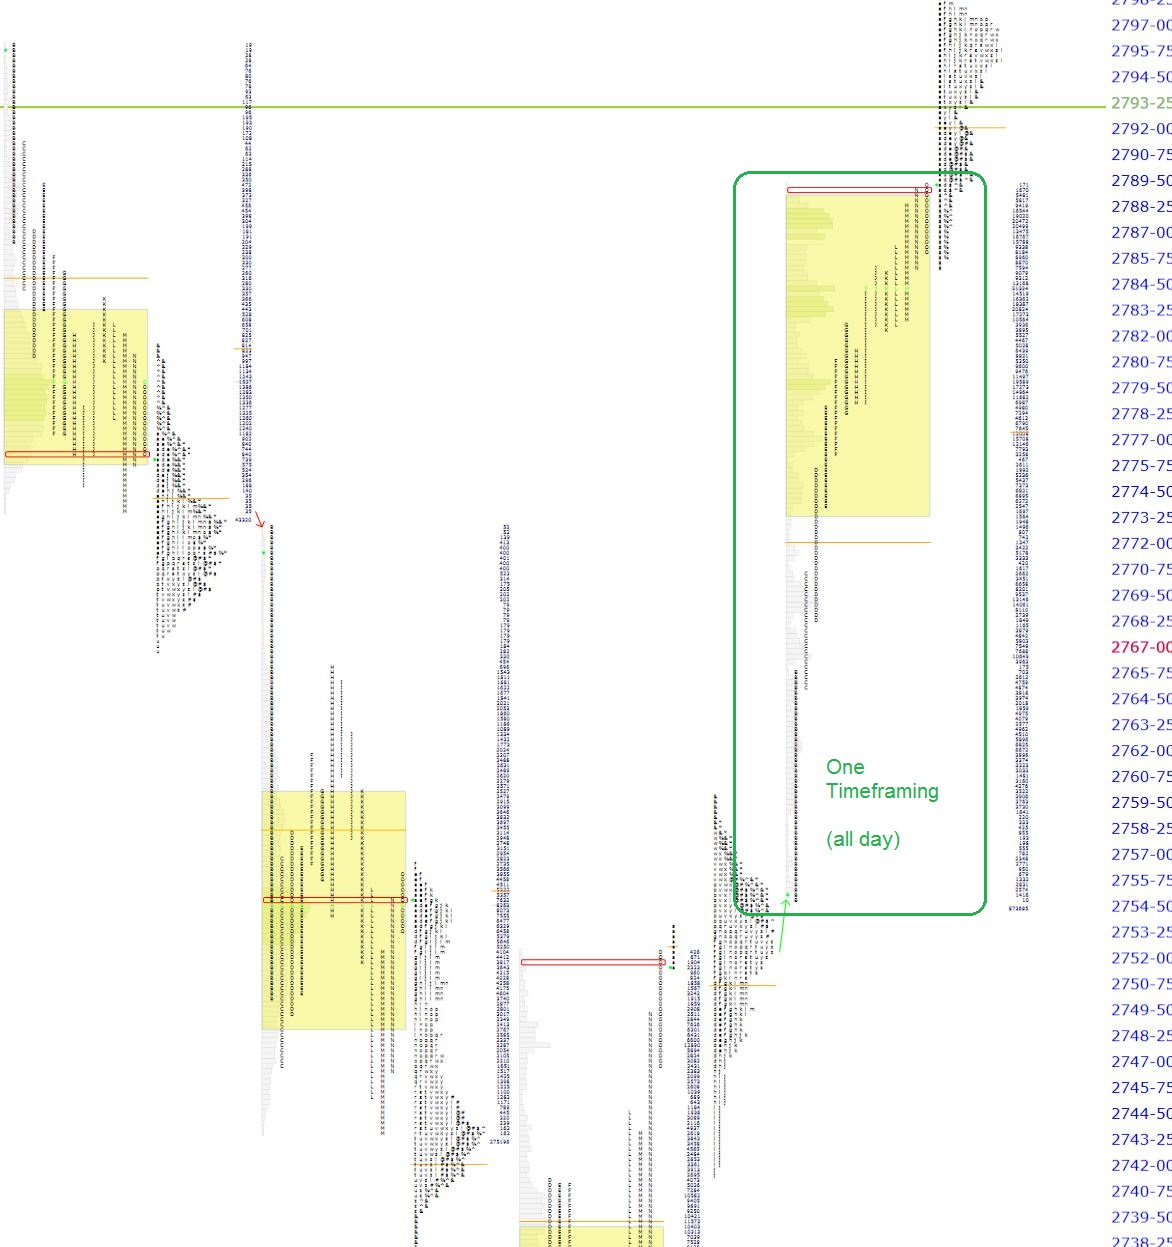 Market Profile Analysis of S&P Futures 03 12 19 | Shadow Trader